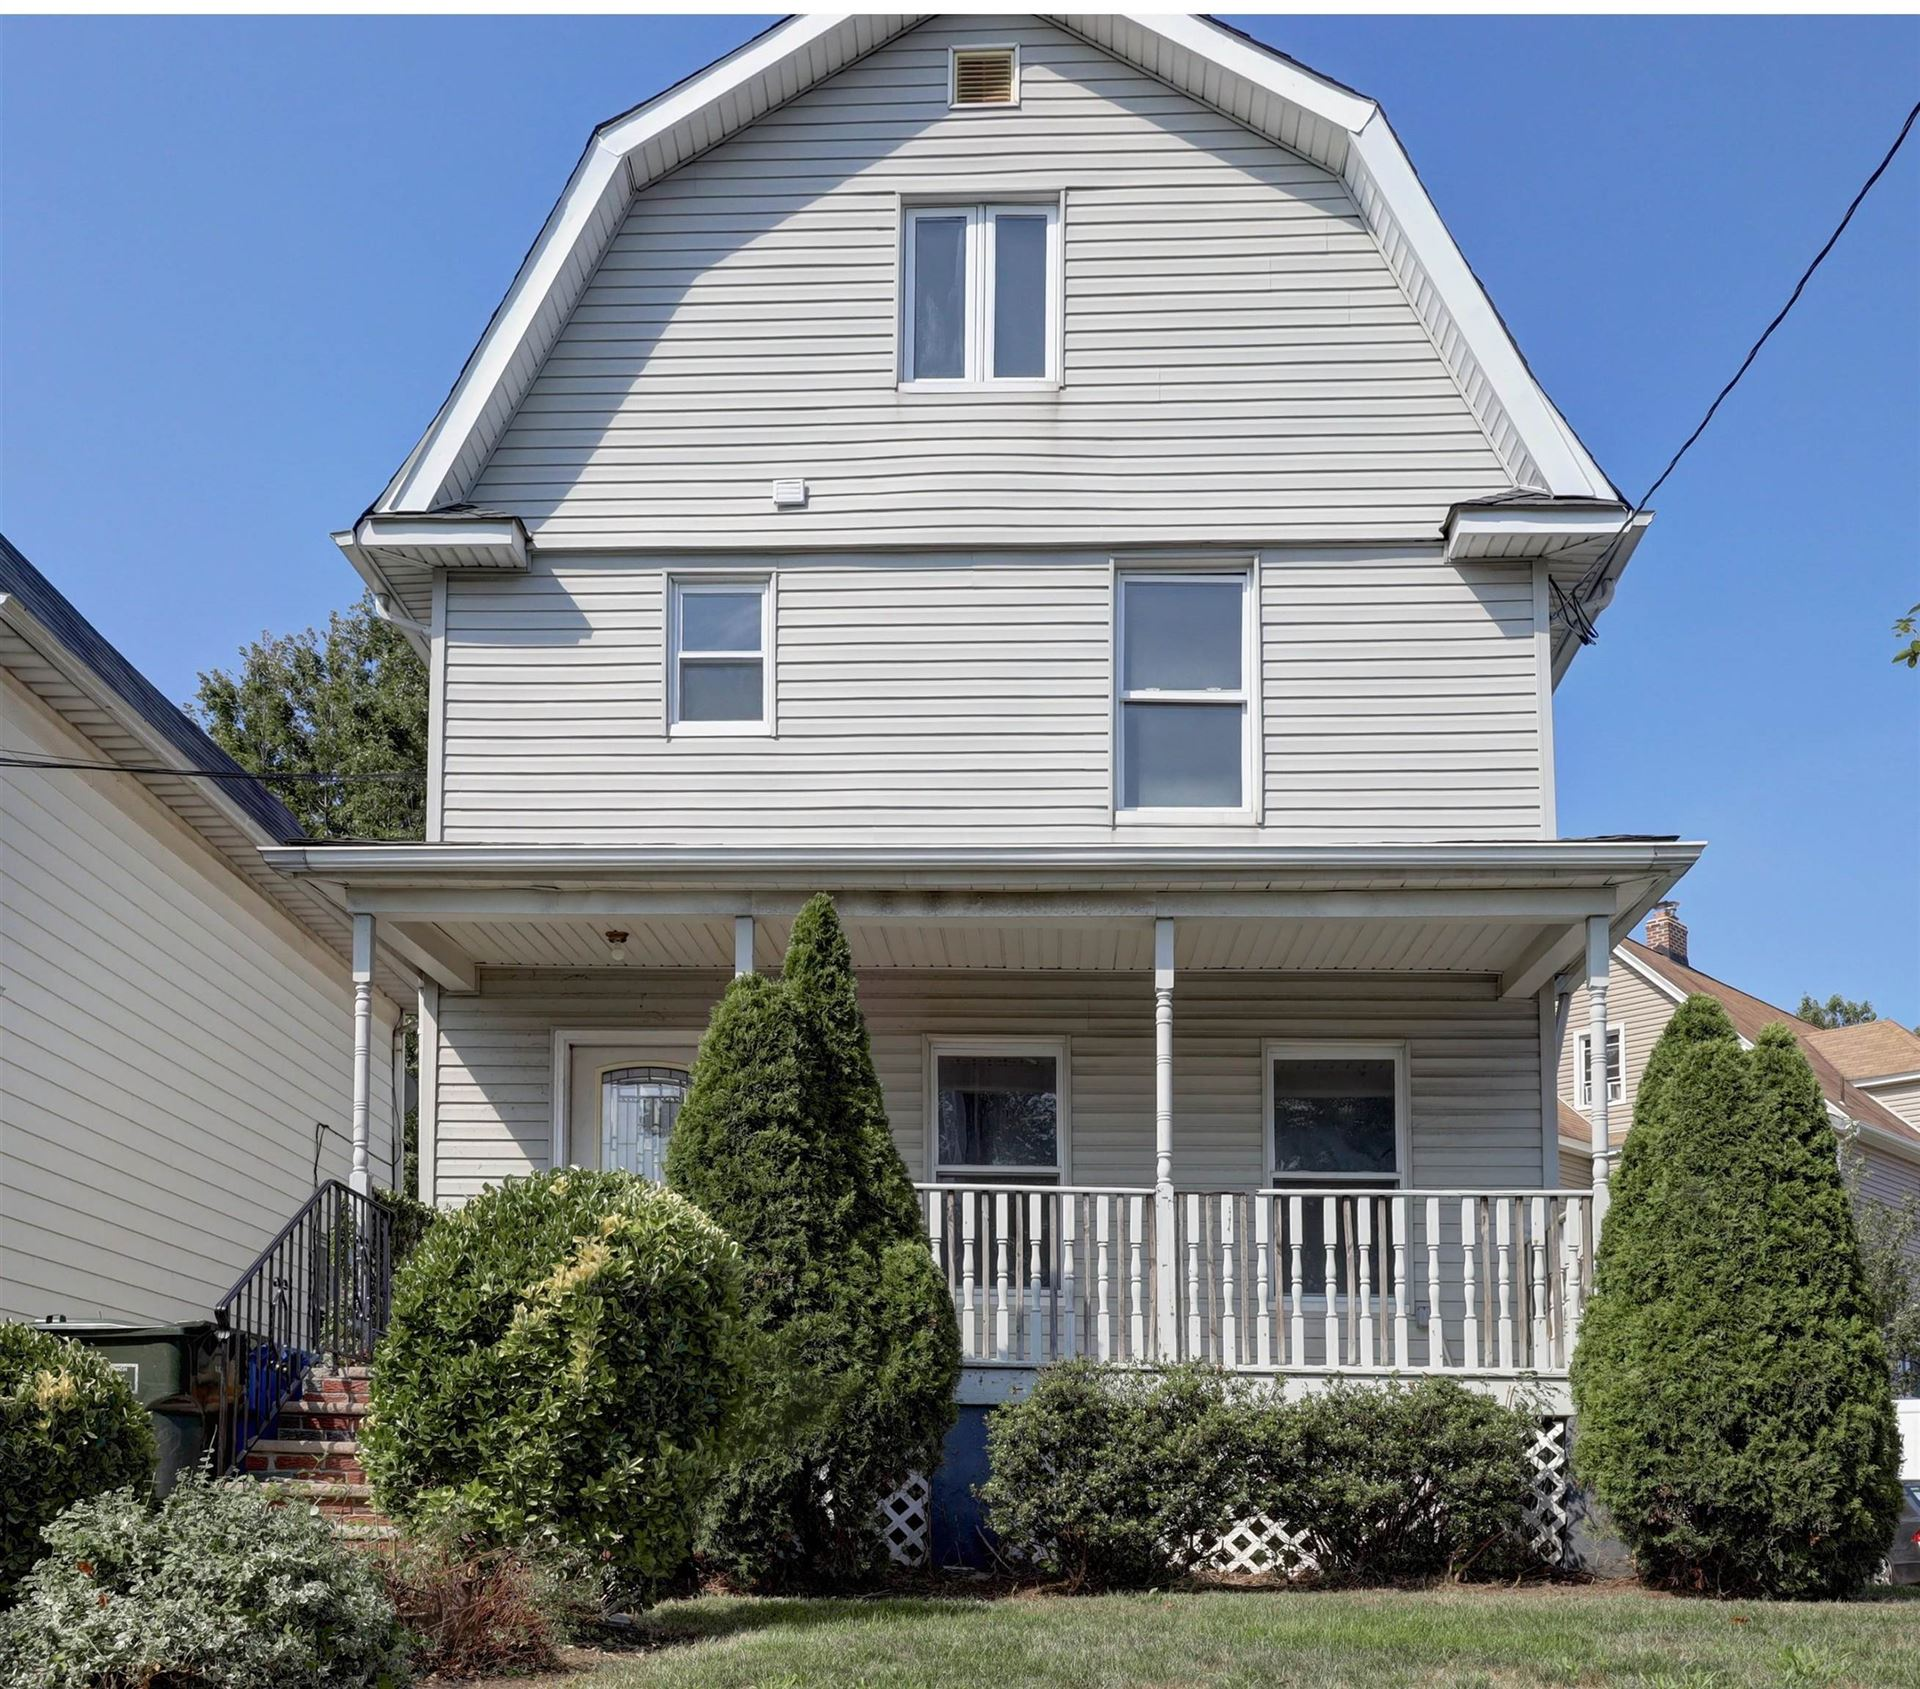 31 EAST ERIE AVE, Rutherford, NJ 07070 - #: 210019689